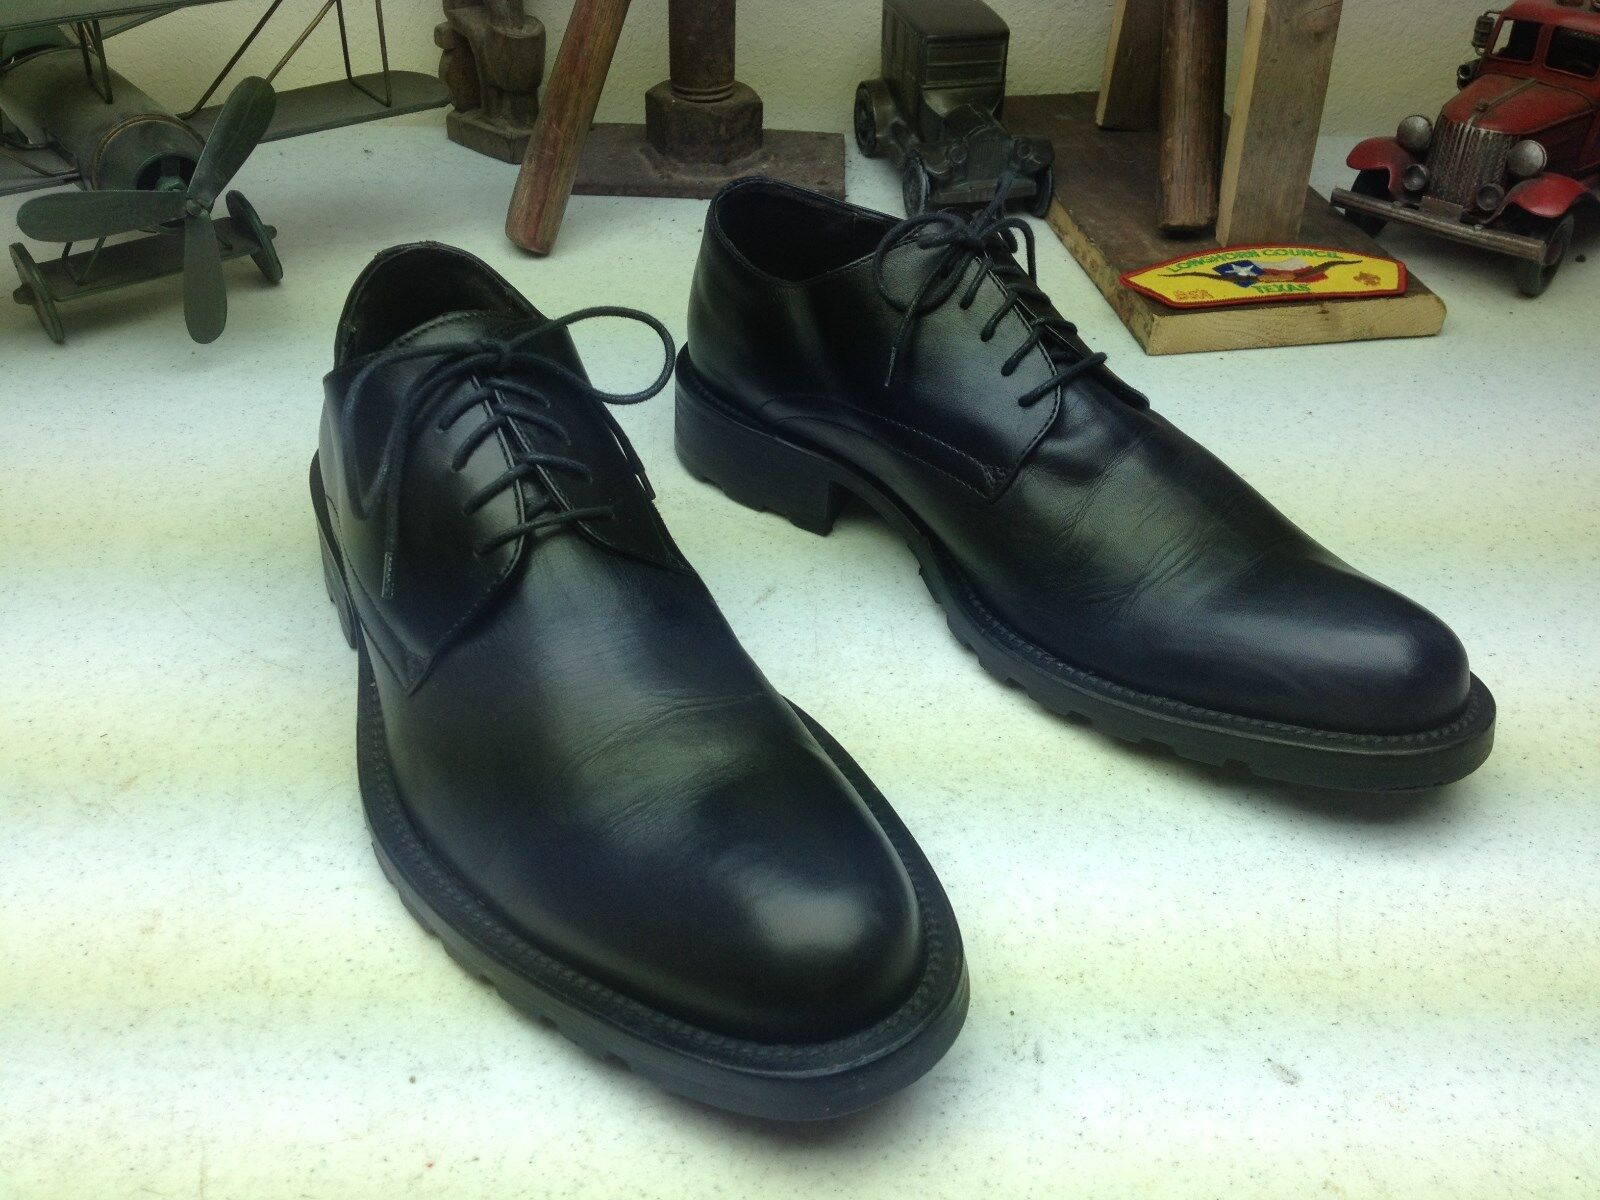 MADE IN ITALY KENNETH COLE schwarz LEATHER LEATHER LEATHER LACE UP OXFORD POWER schuhe 10 M 89339c